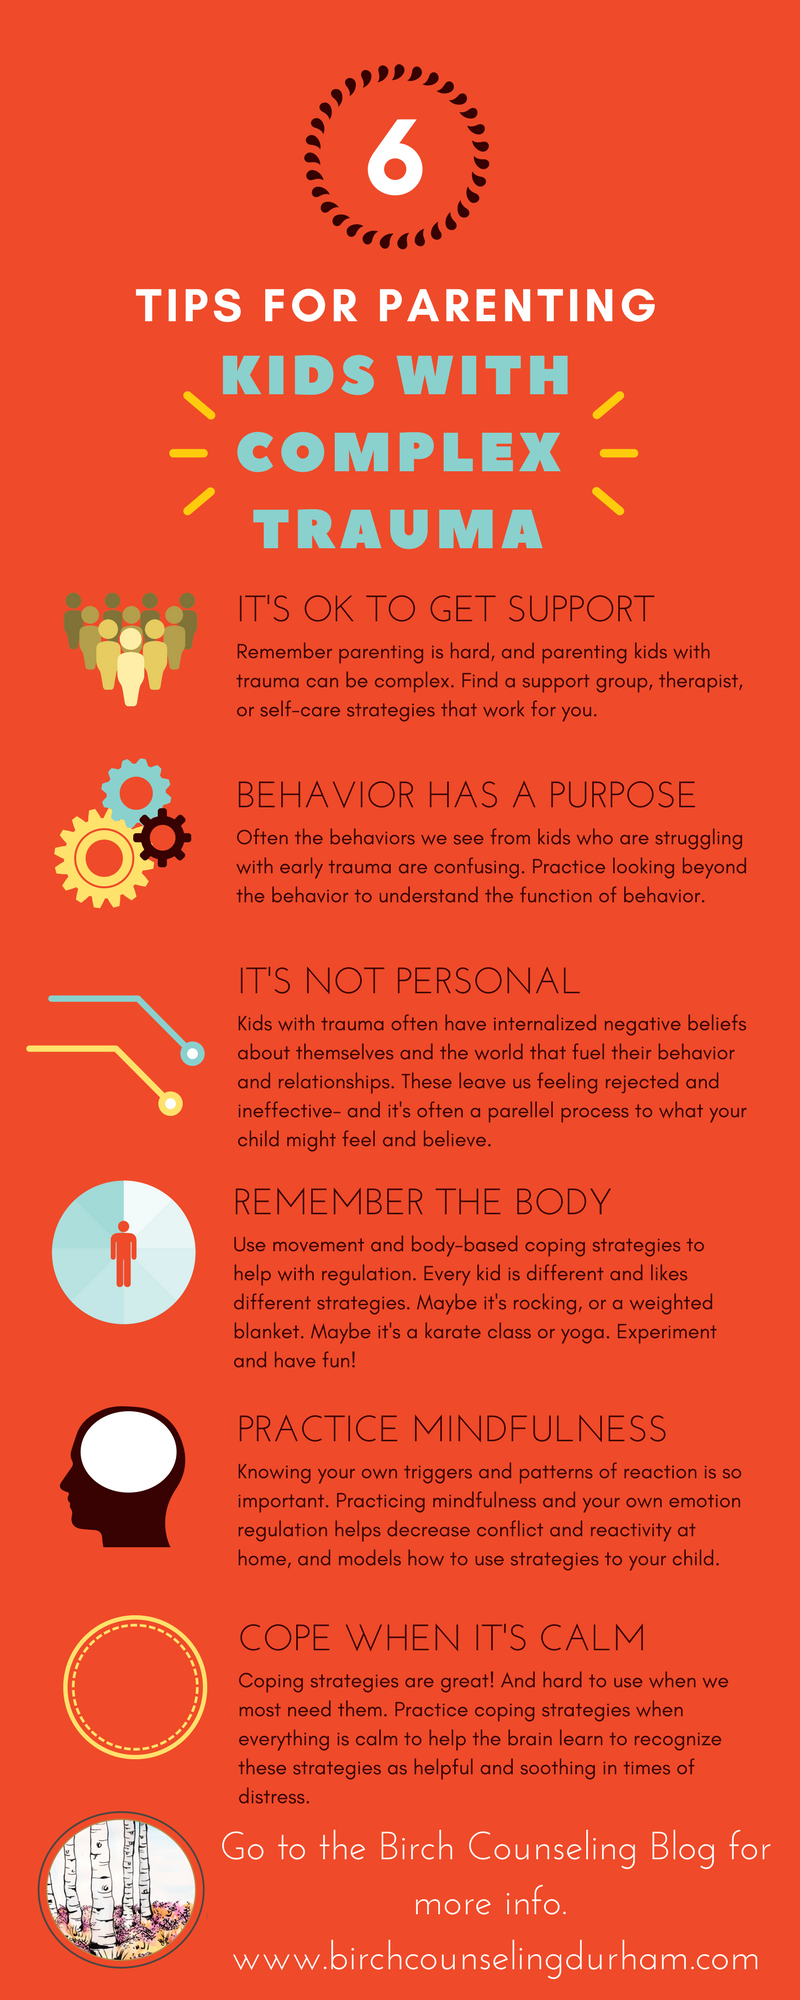 Tips for Parenting Kids with Complex Trauma Infographic